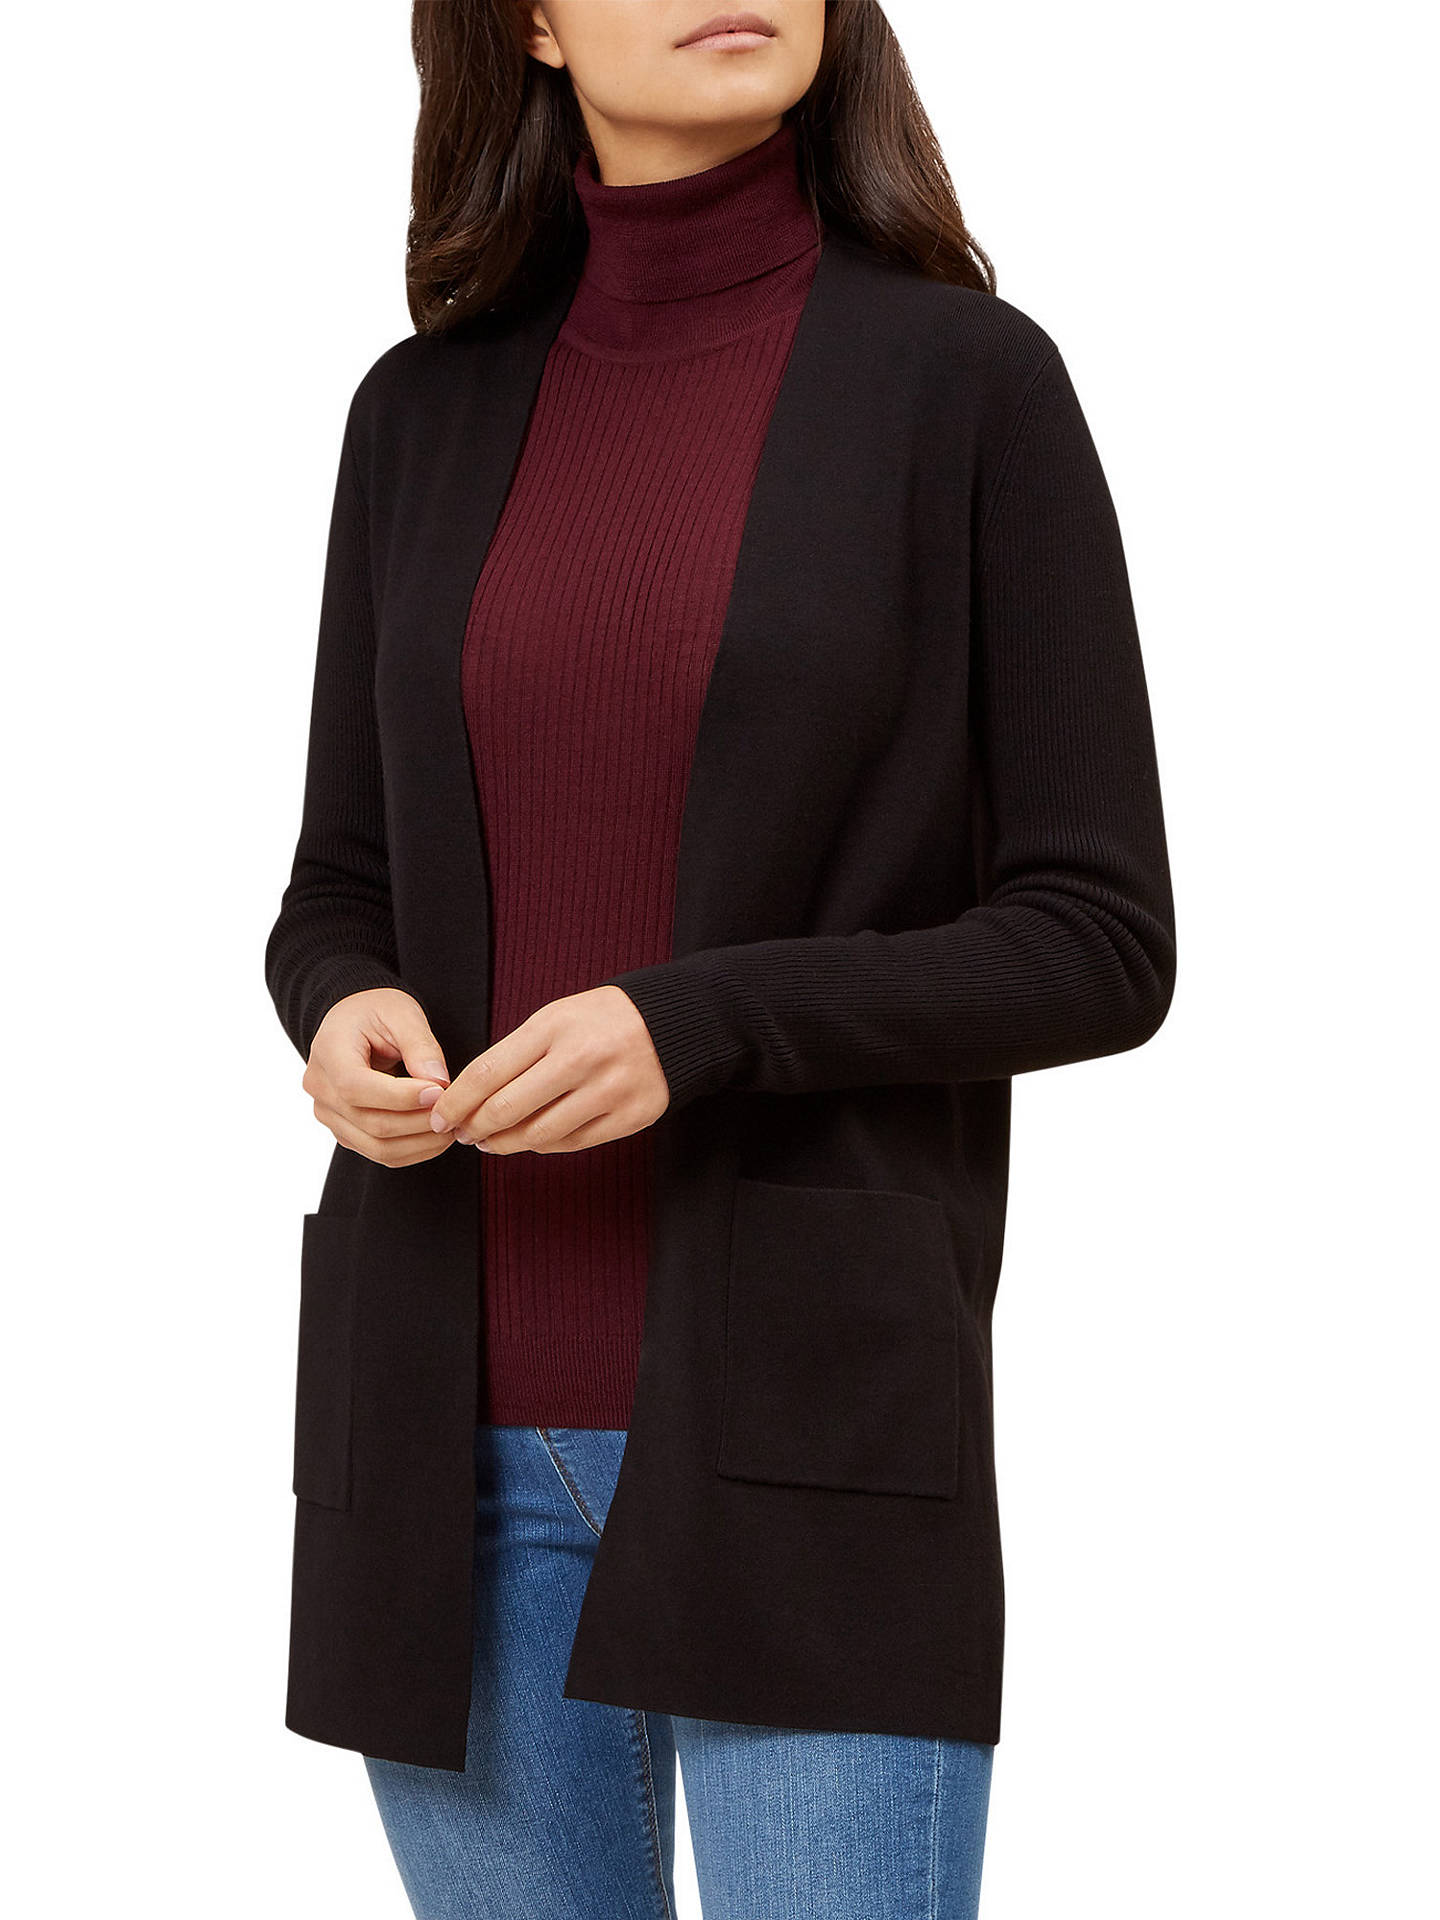 BuyHobbs Leigh Cardigan, Black, XS Online at johnlewis.com